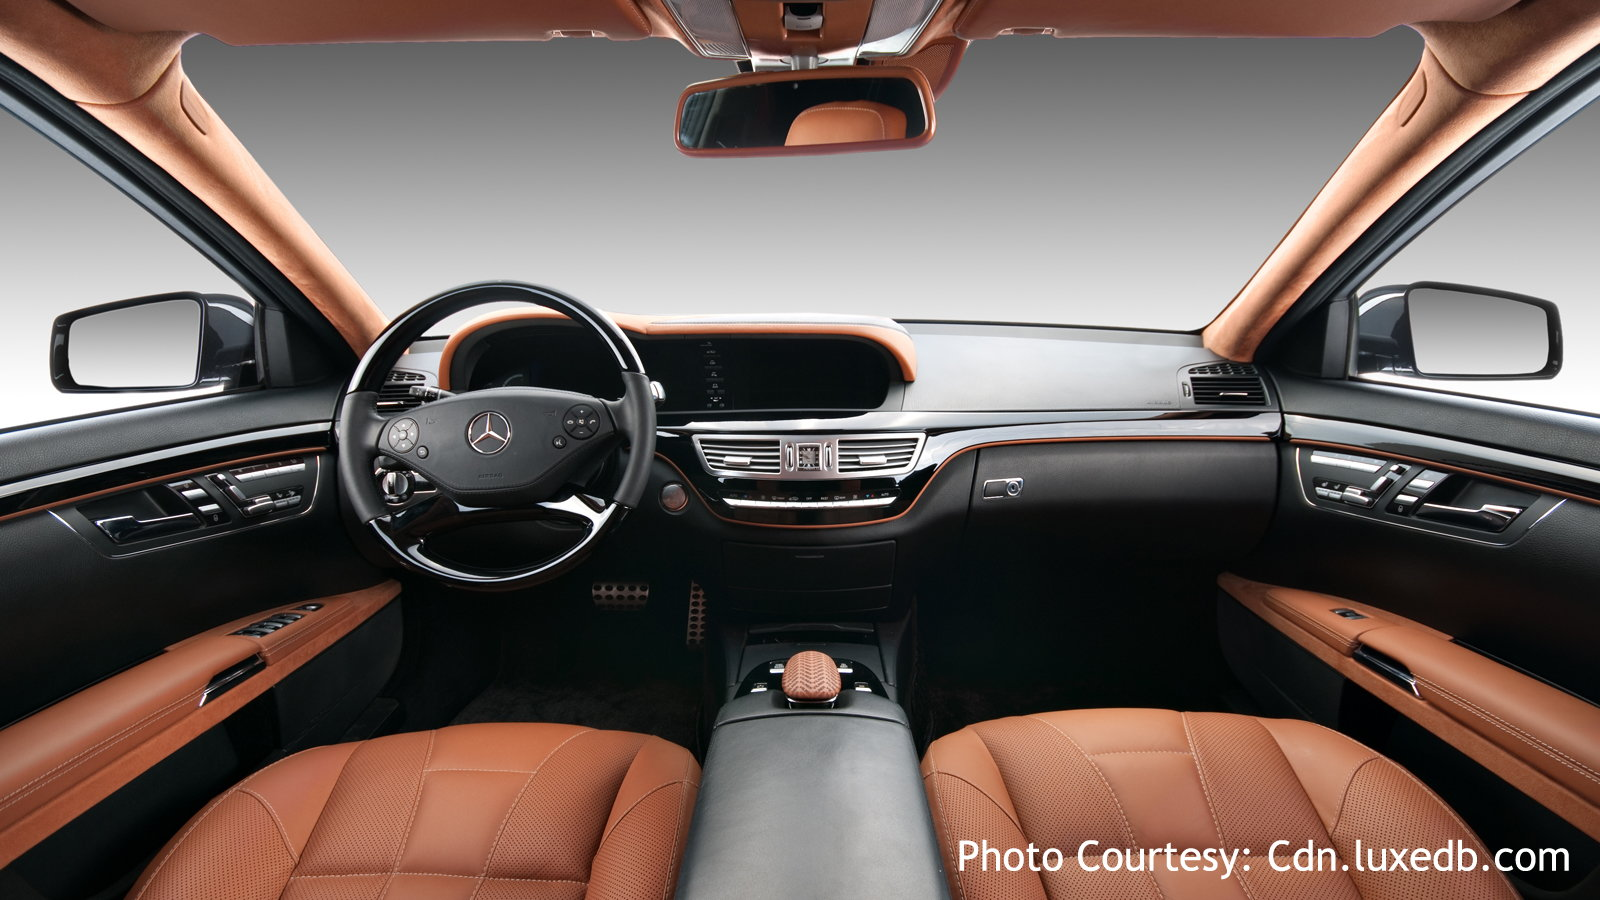 Heating and Cooling Seats, Steering Wheel, and Center Console